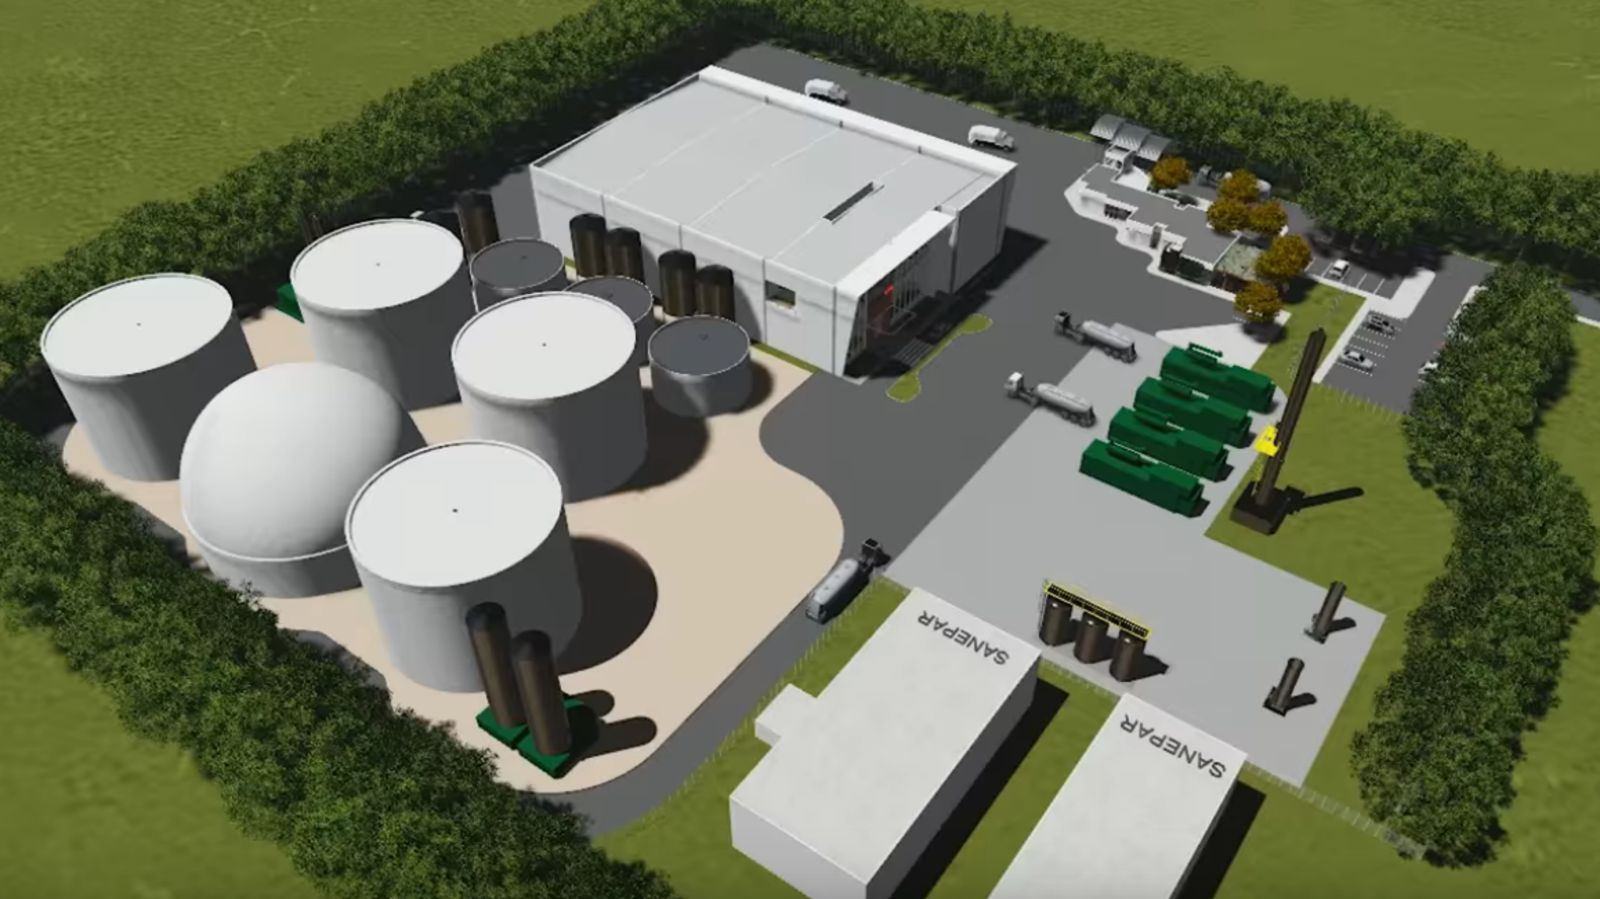 Brazil's 1st waste-generated energy plant will be in Paraná